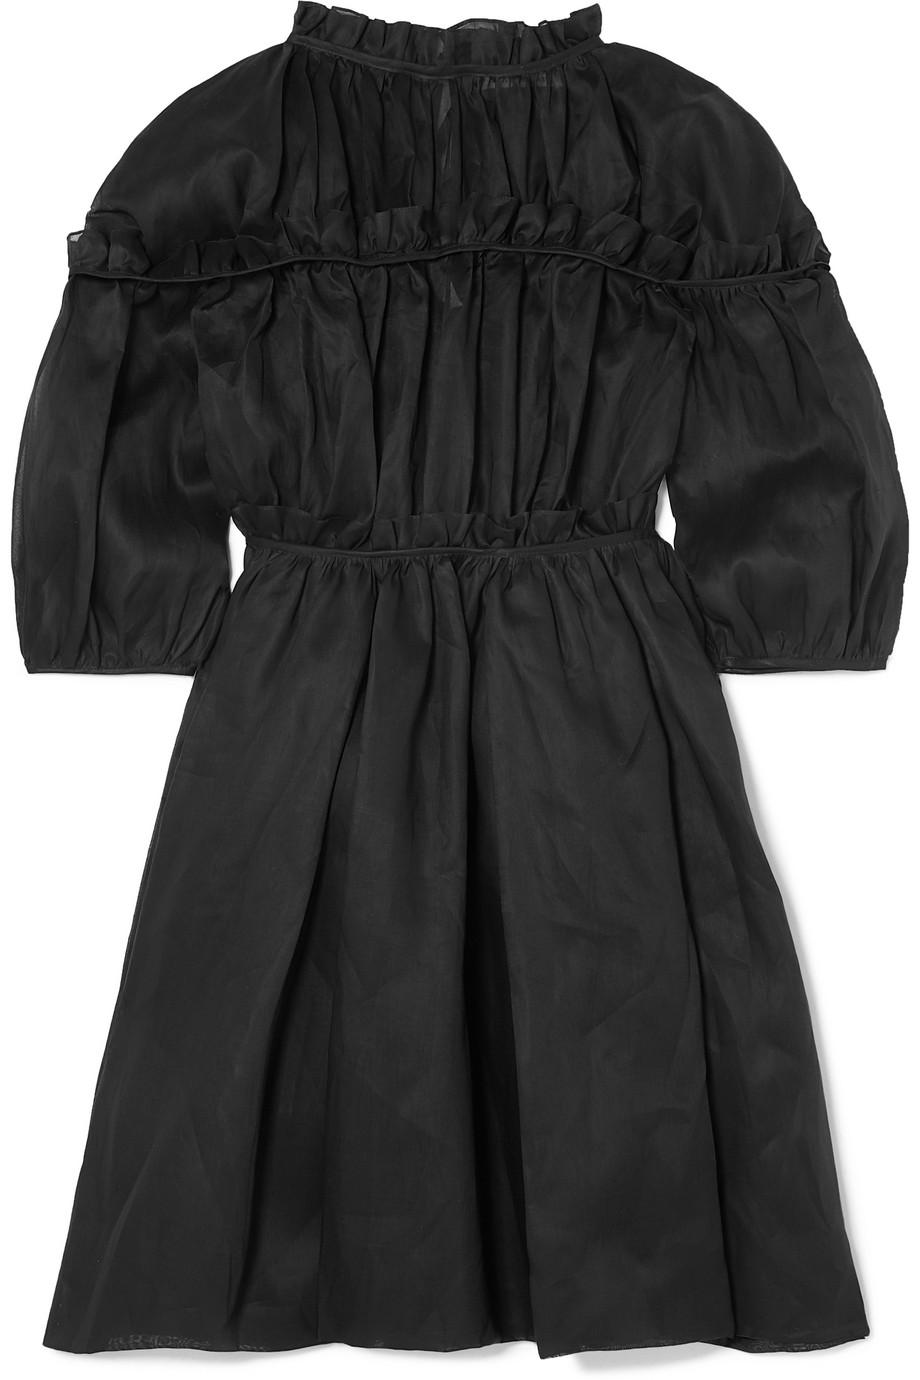 Carmen Ruffled Cotton-organza Dress - Black Cecilie Bahnsen xL1cELtcy